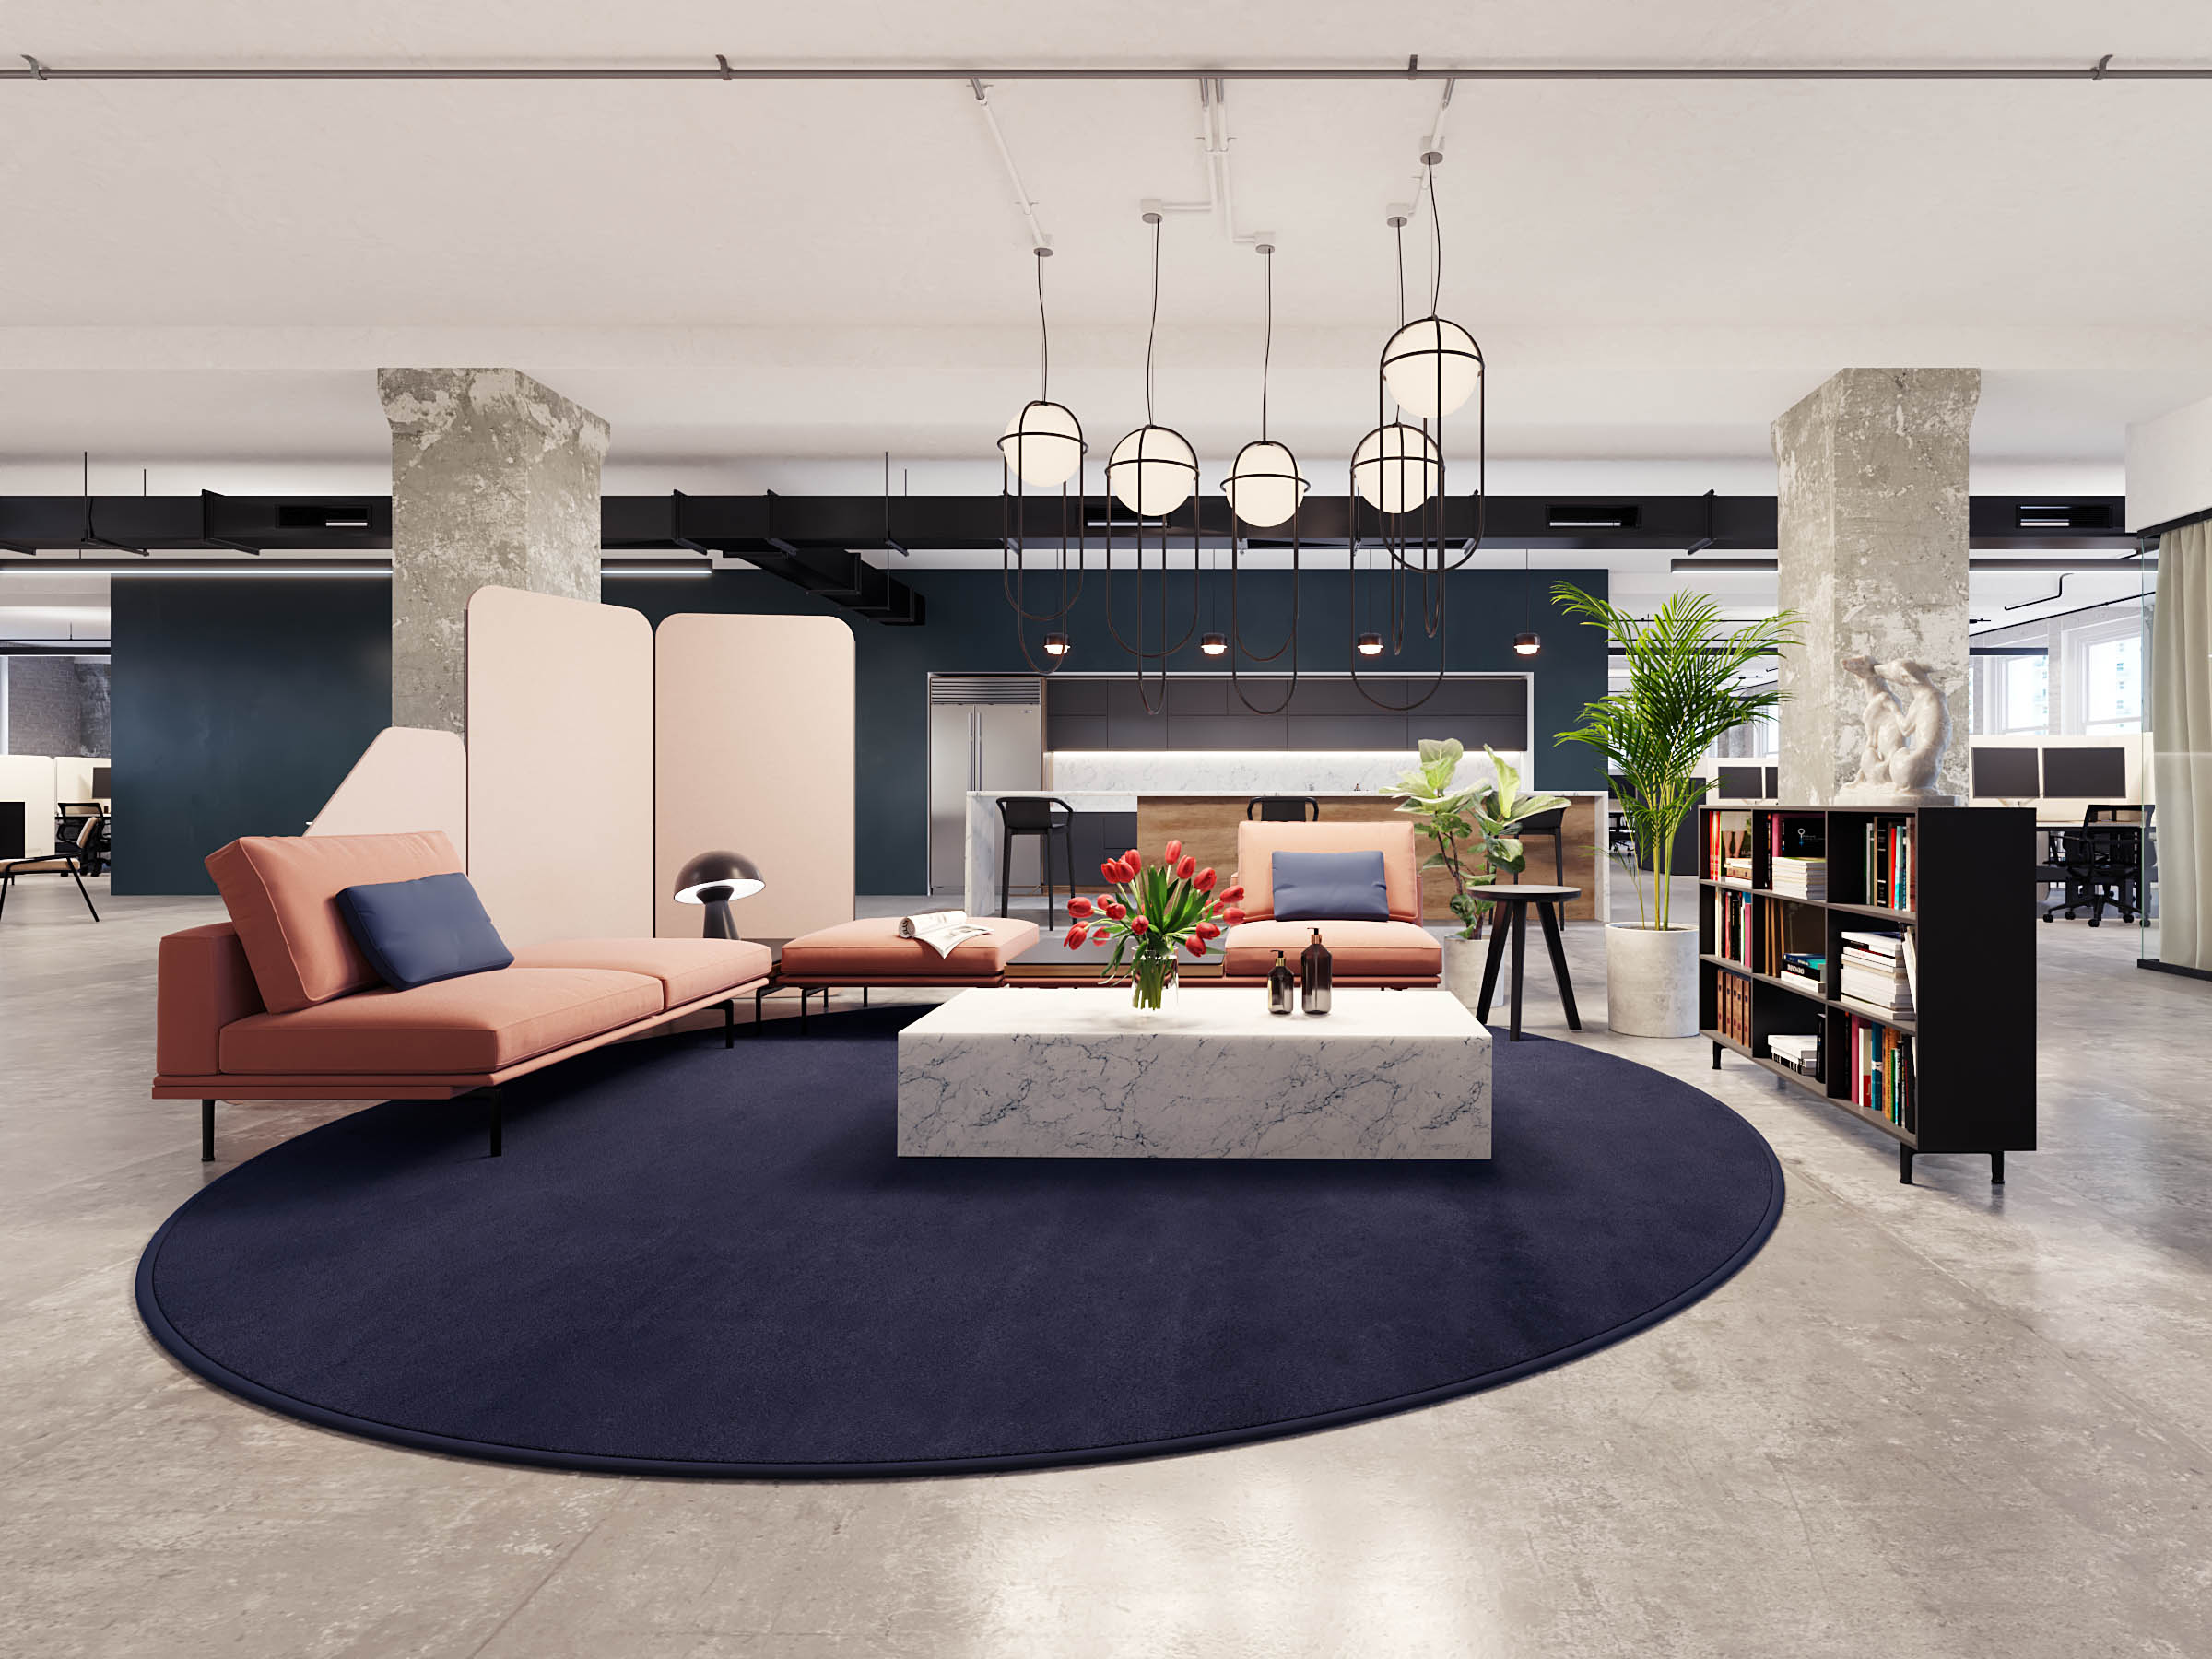 covid VR office design nyc